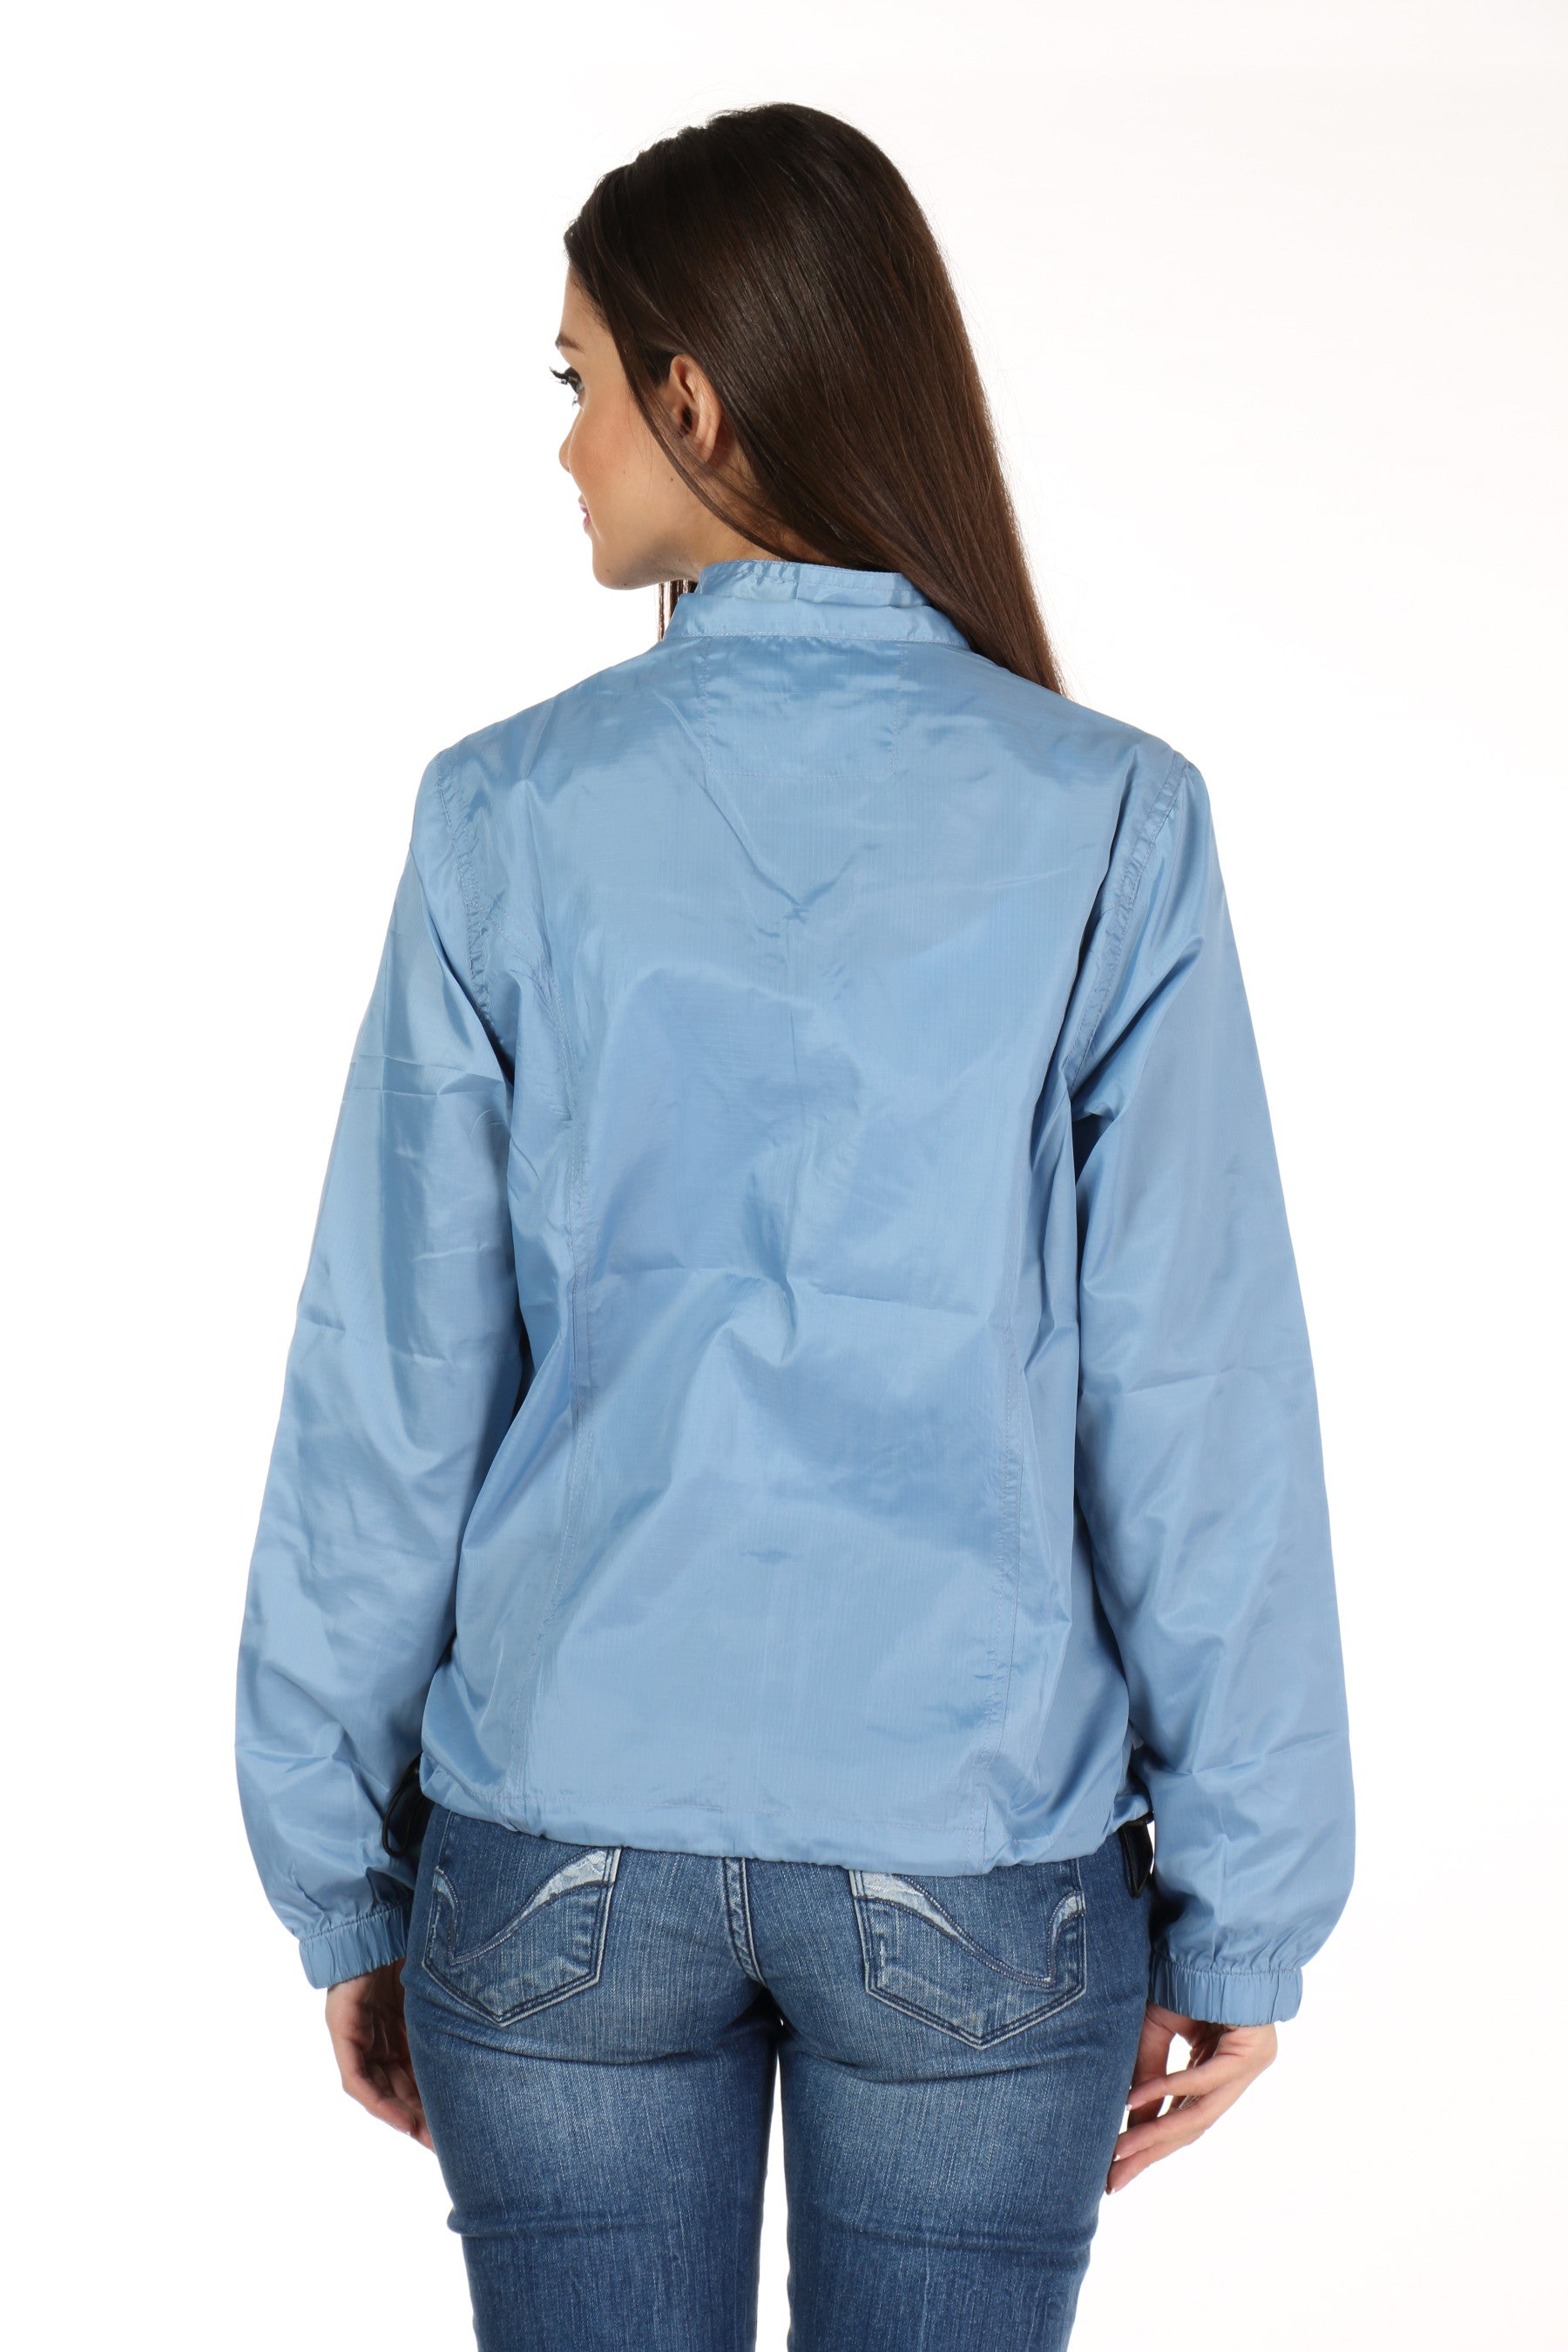 Rain Coat in Sky Blue Back